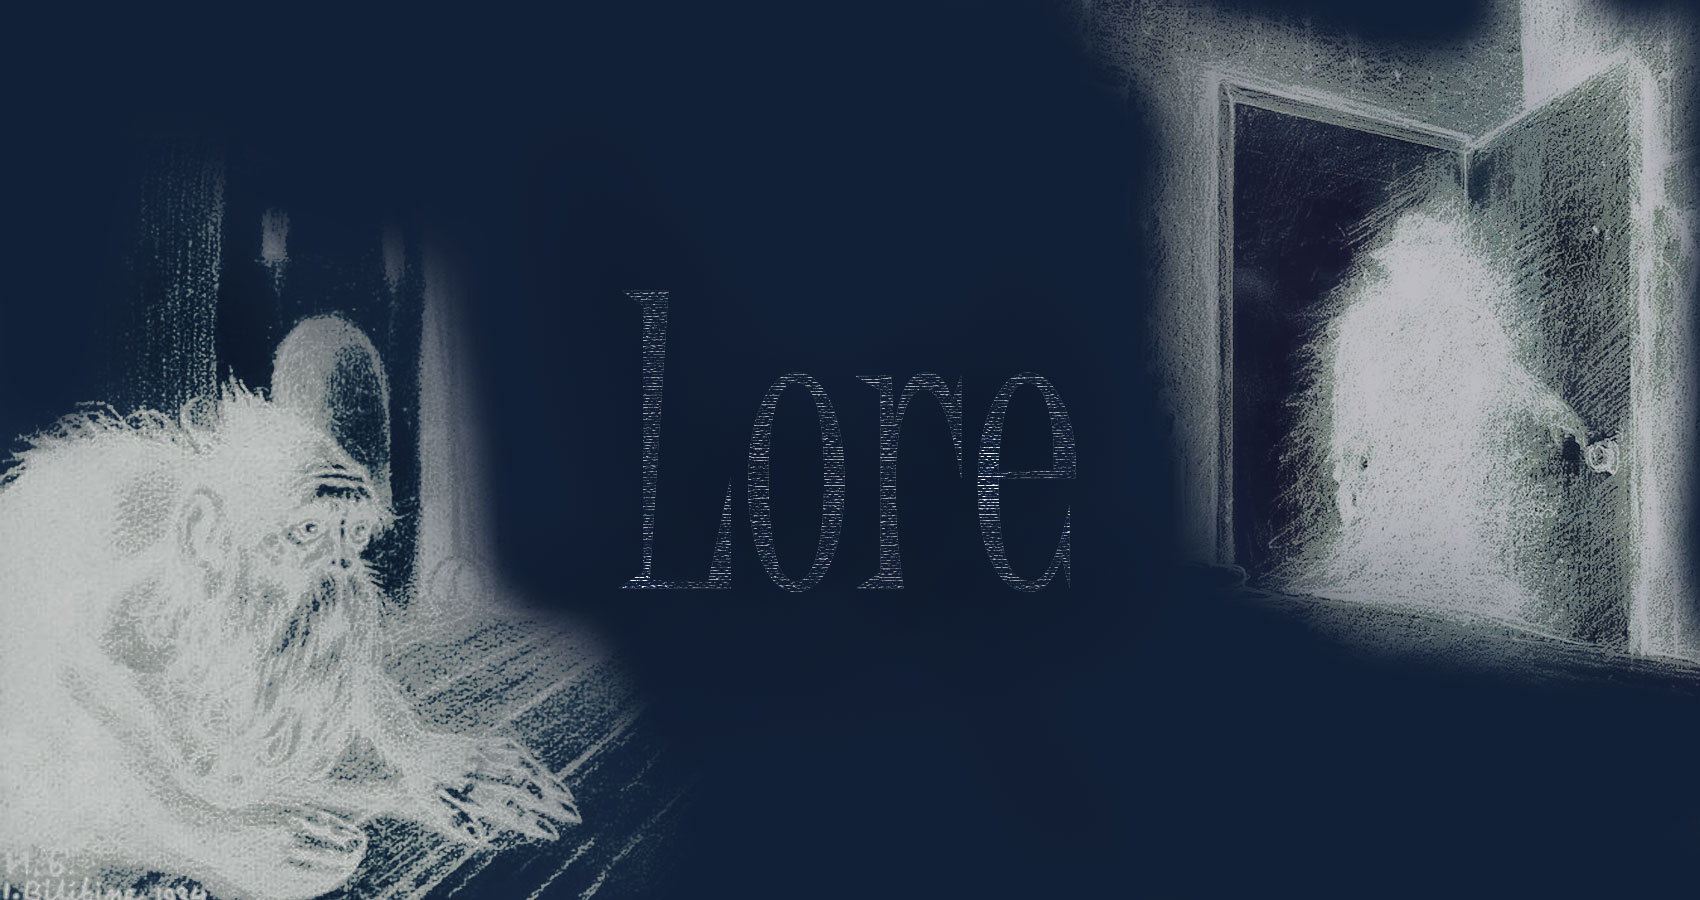 Lore written by Amanda Needham at Spillwords.com